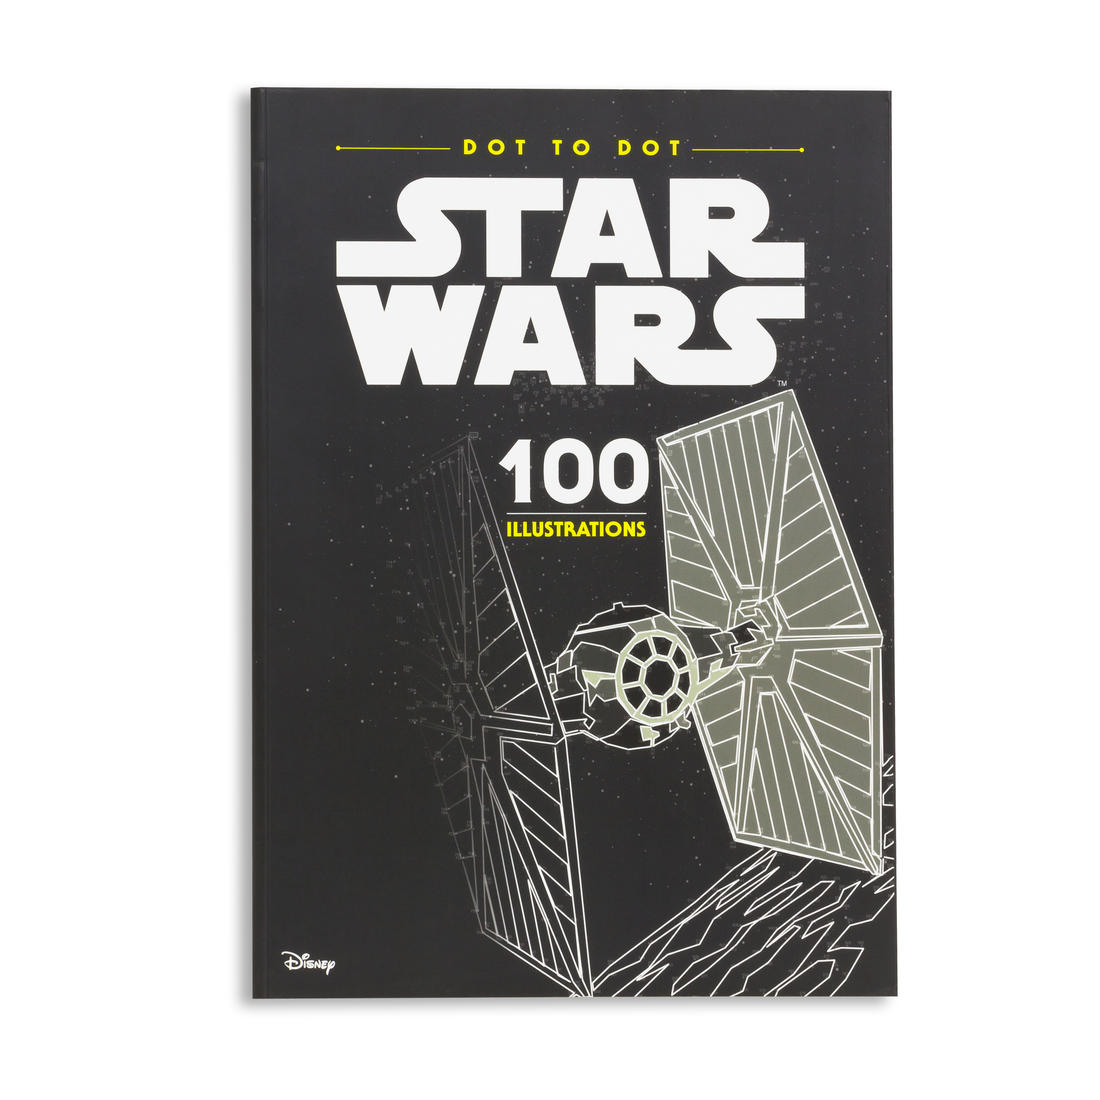 Star Wars Dot to Dot Colouring Book | getDigital